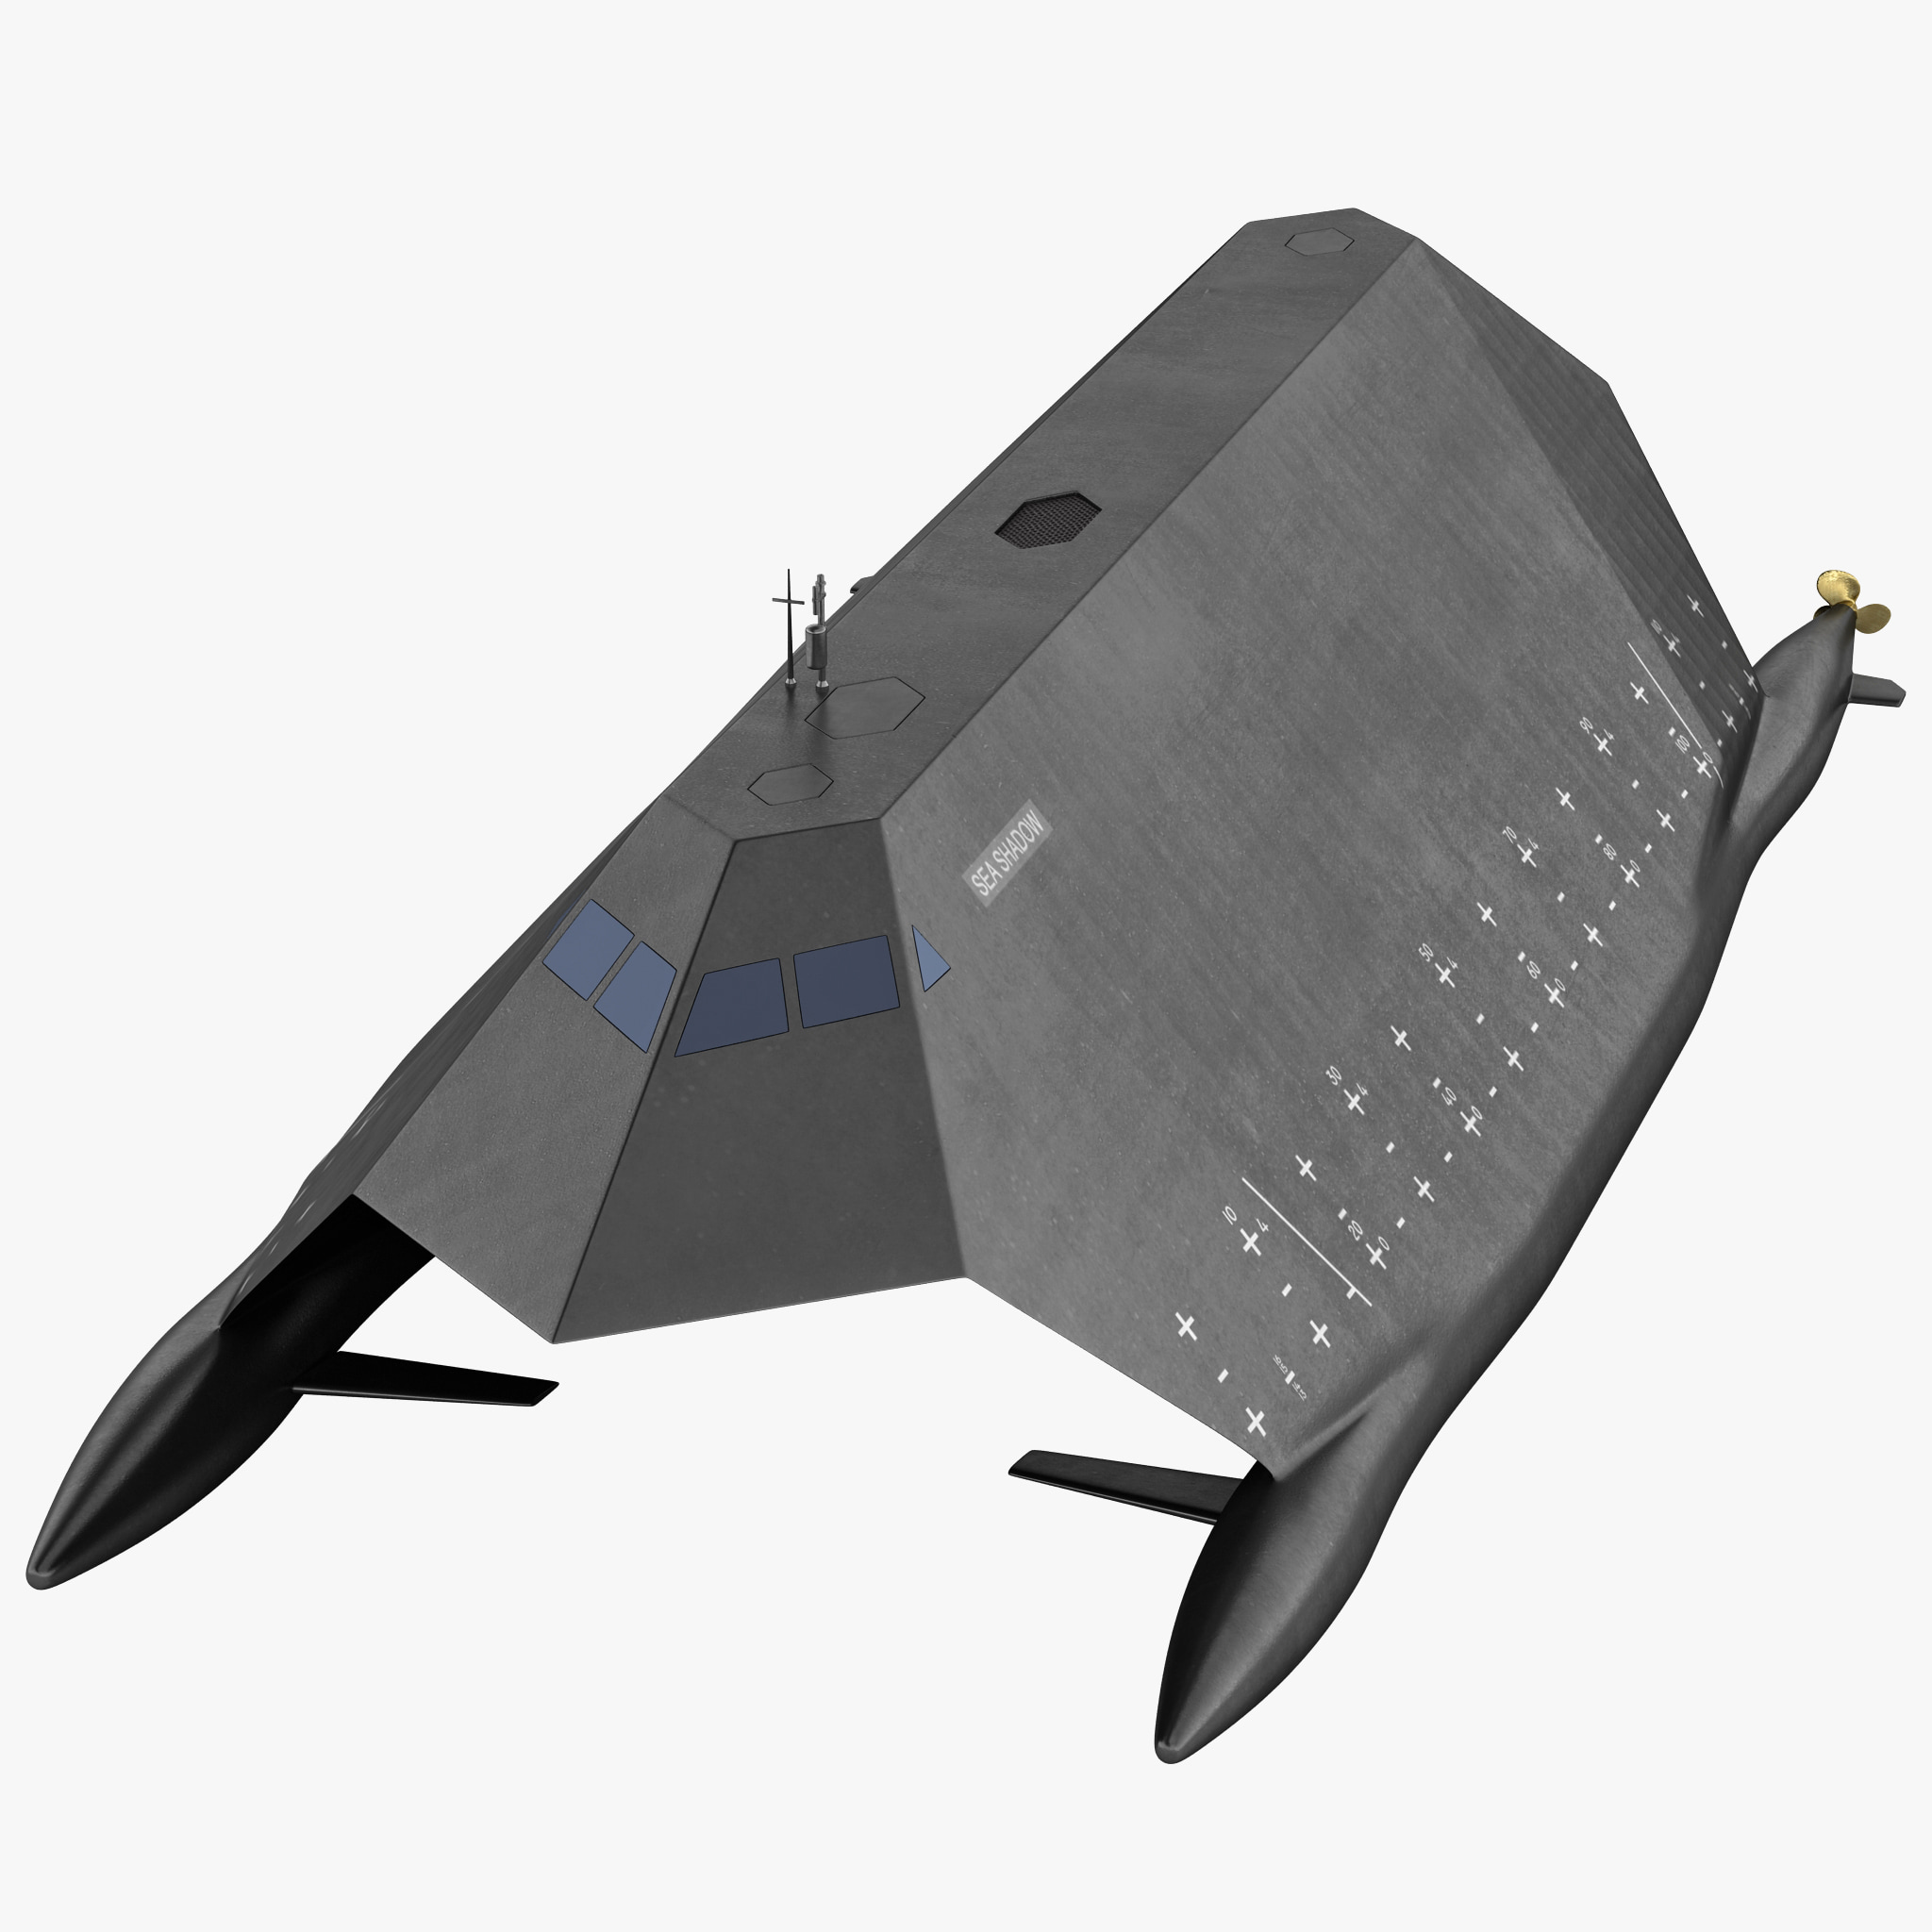 3ds max navy stealth ship sea shadow